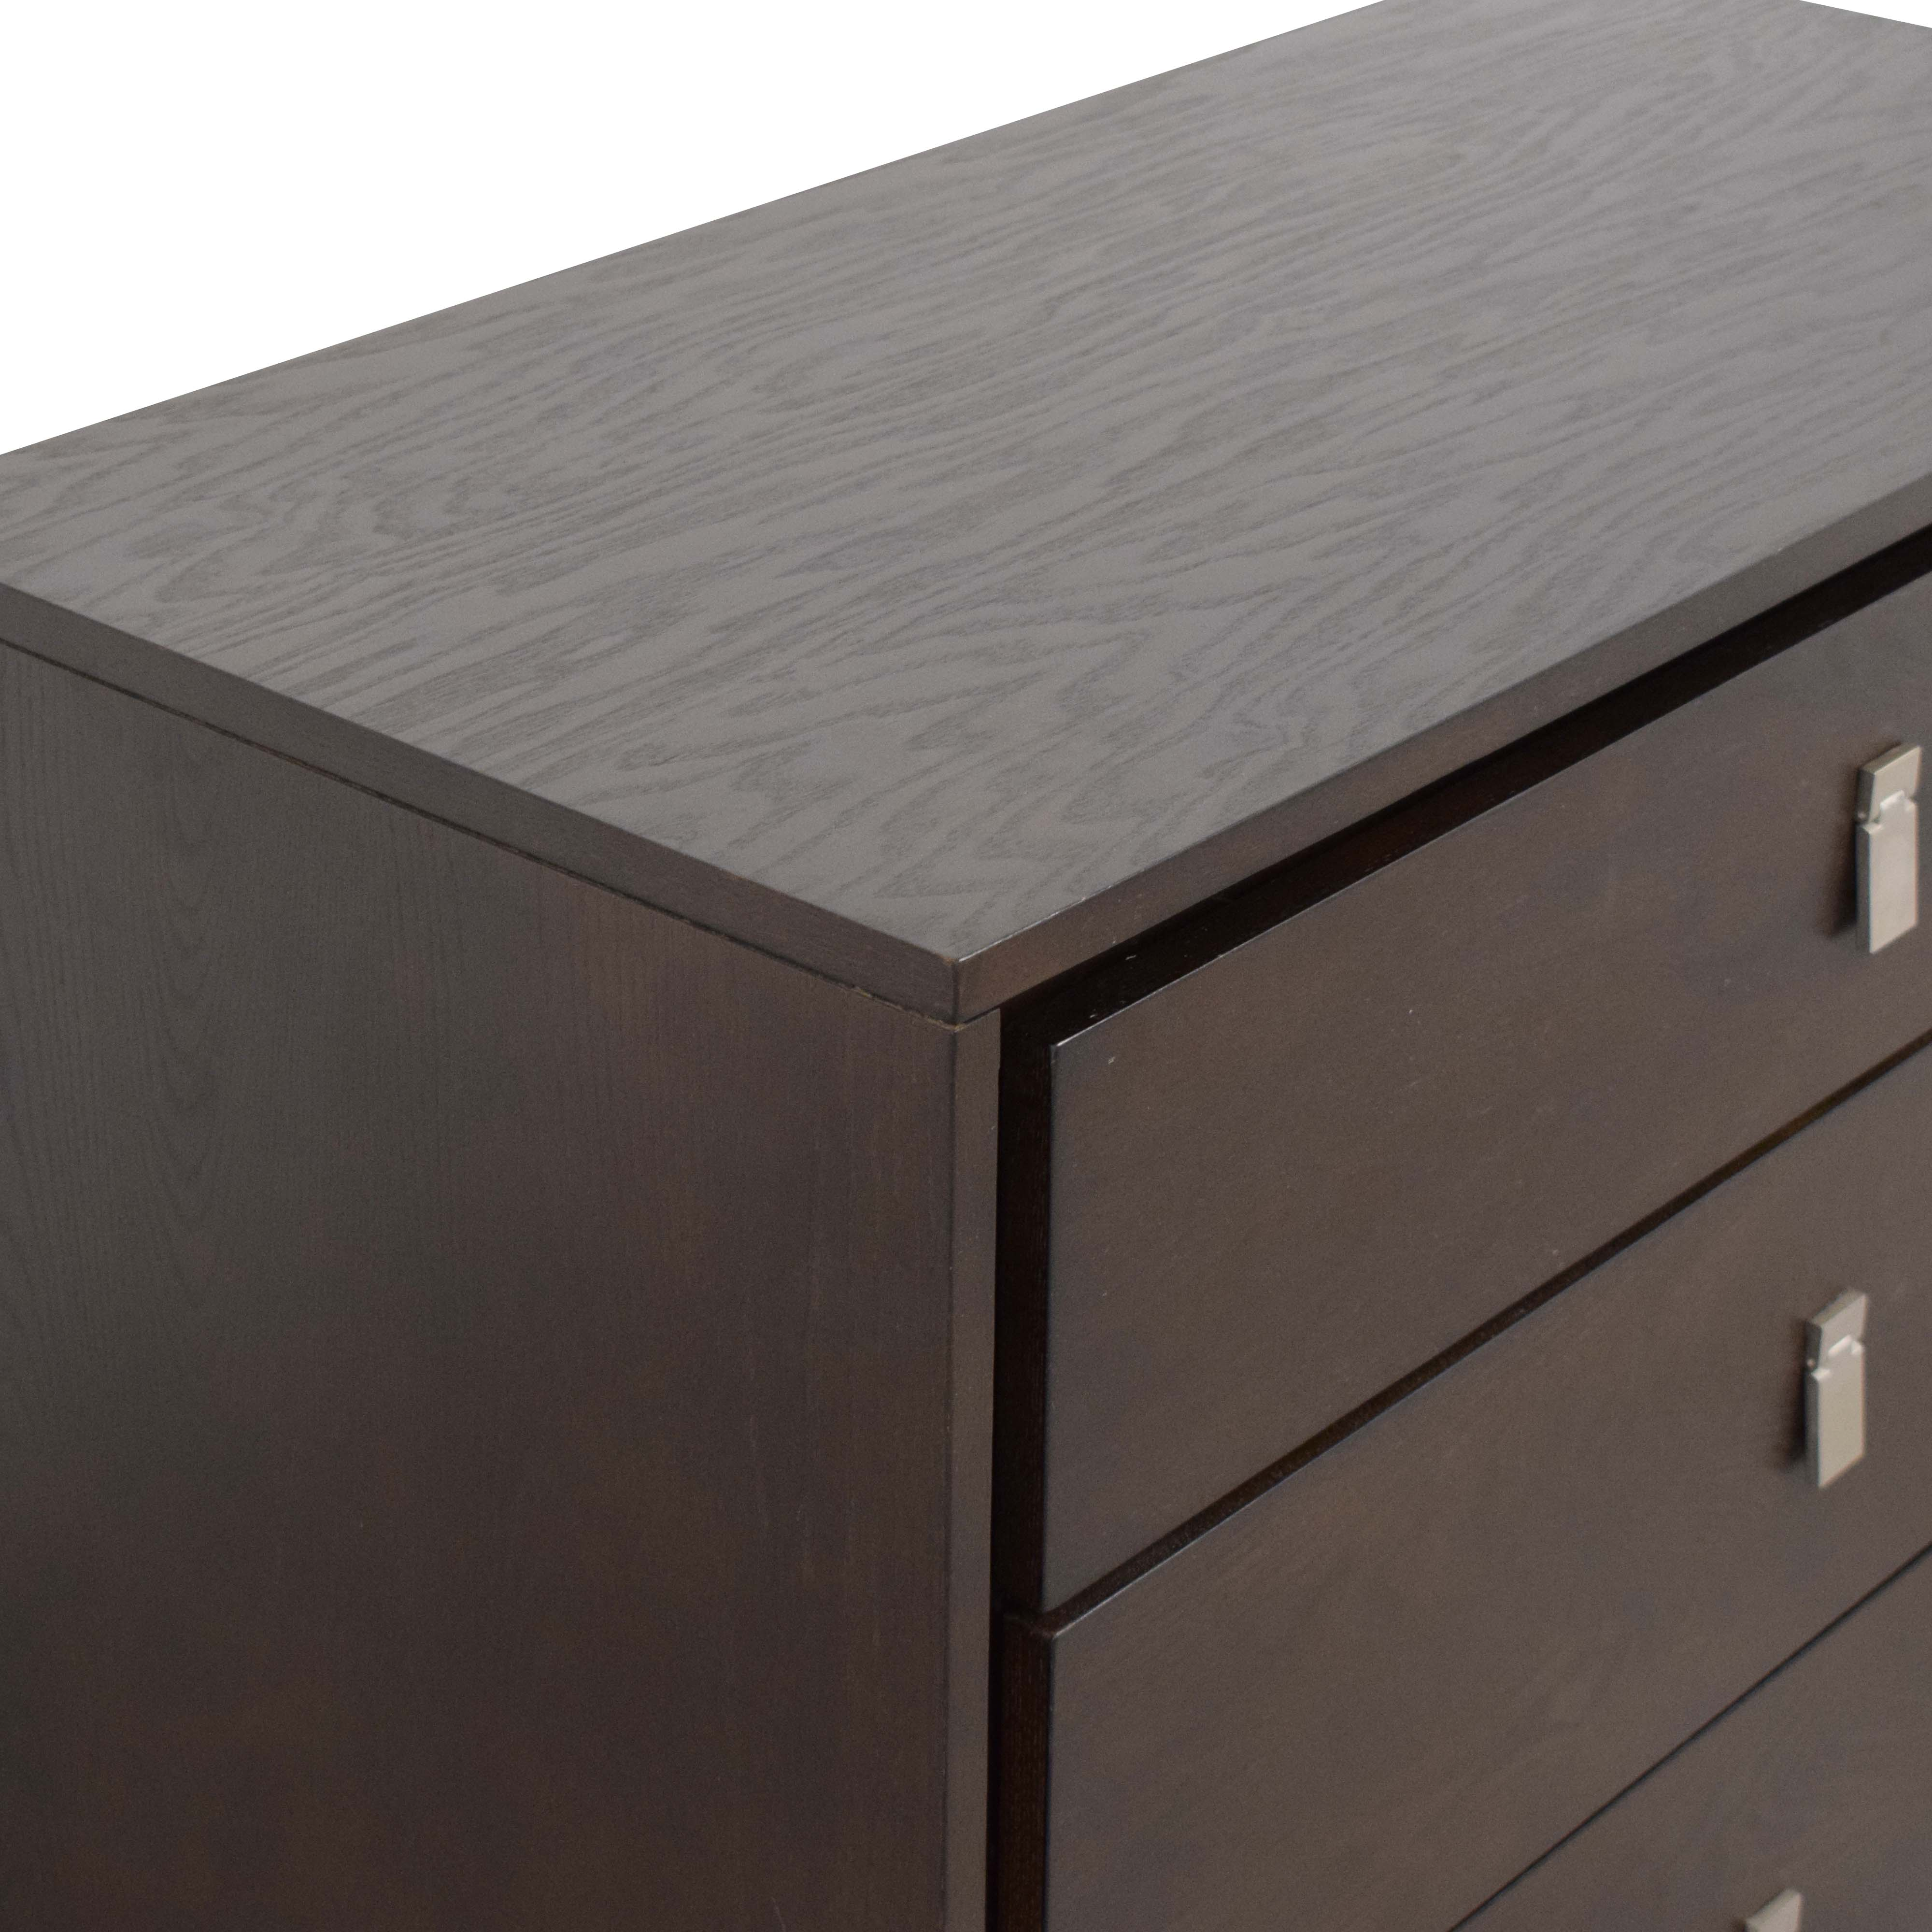 West Elm Niche Three Drawer Dresser / Storage